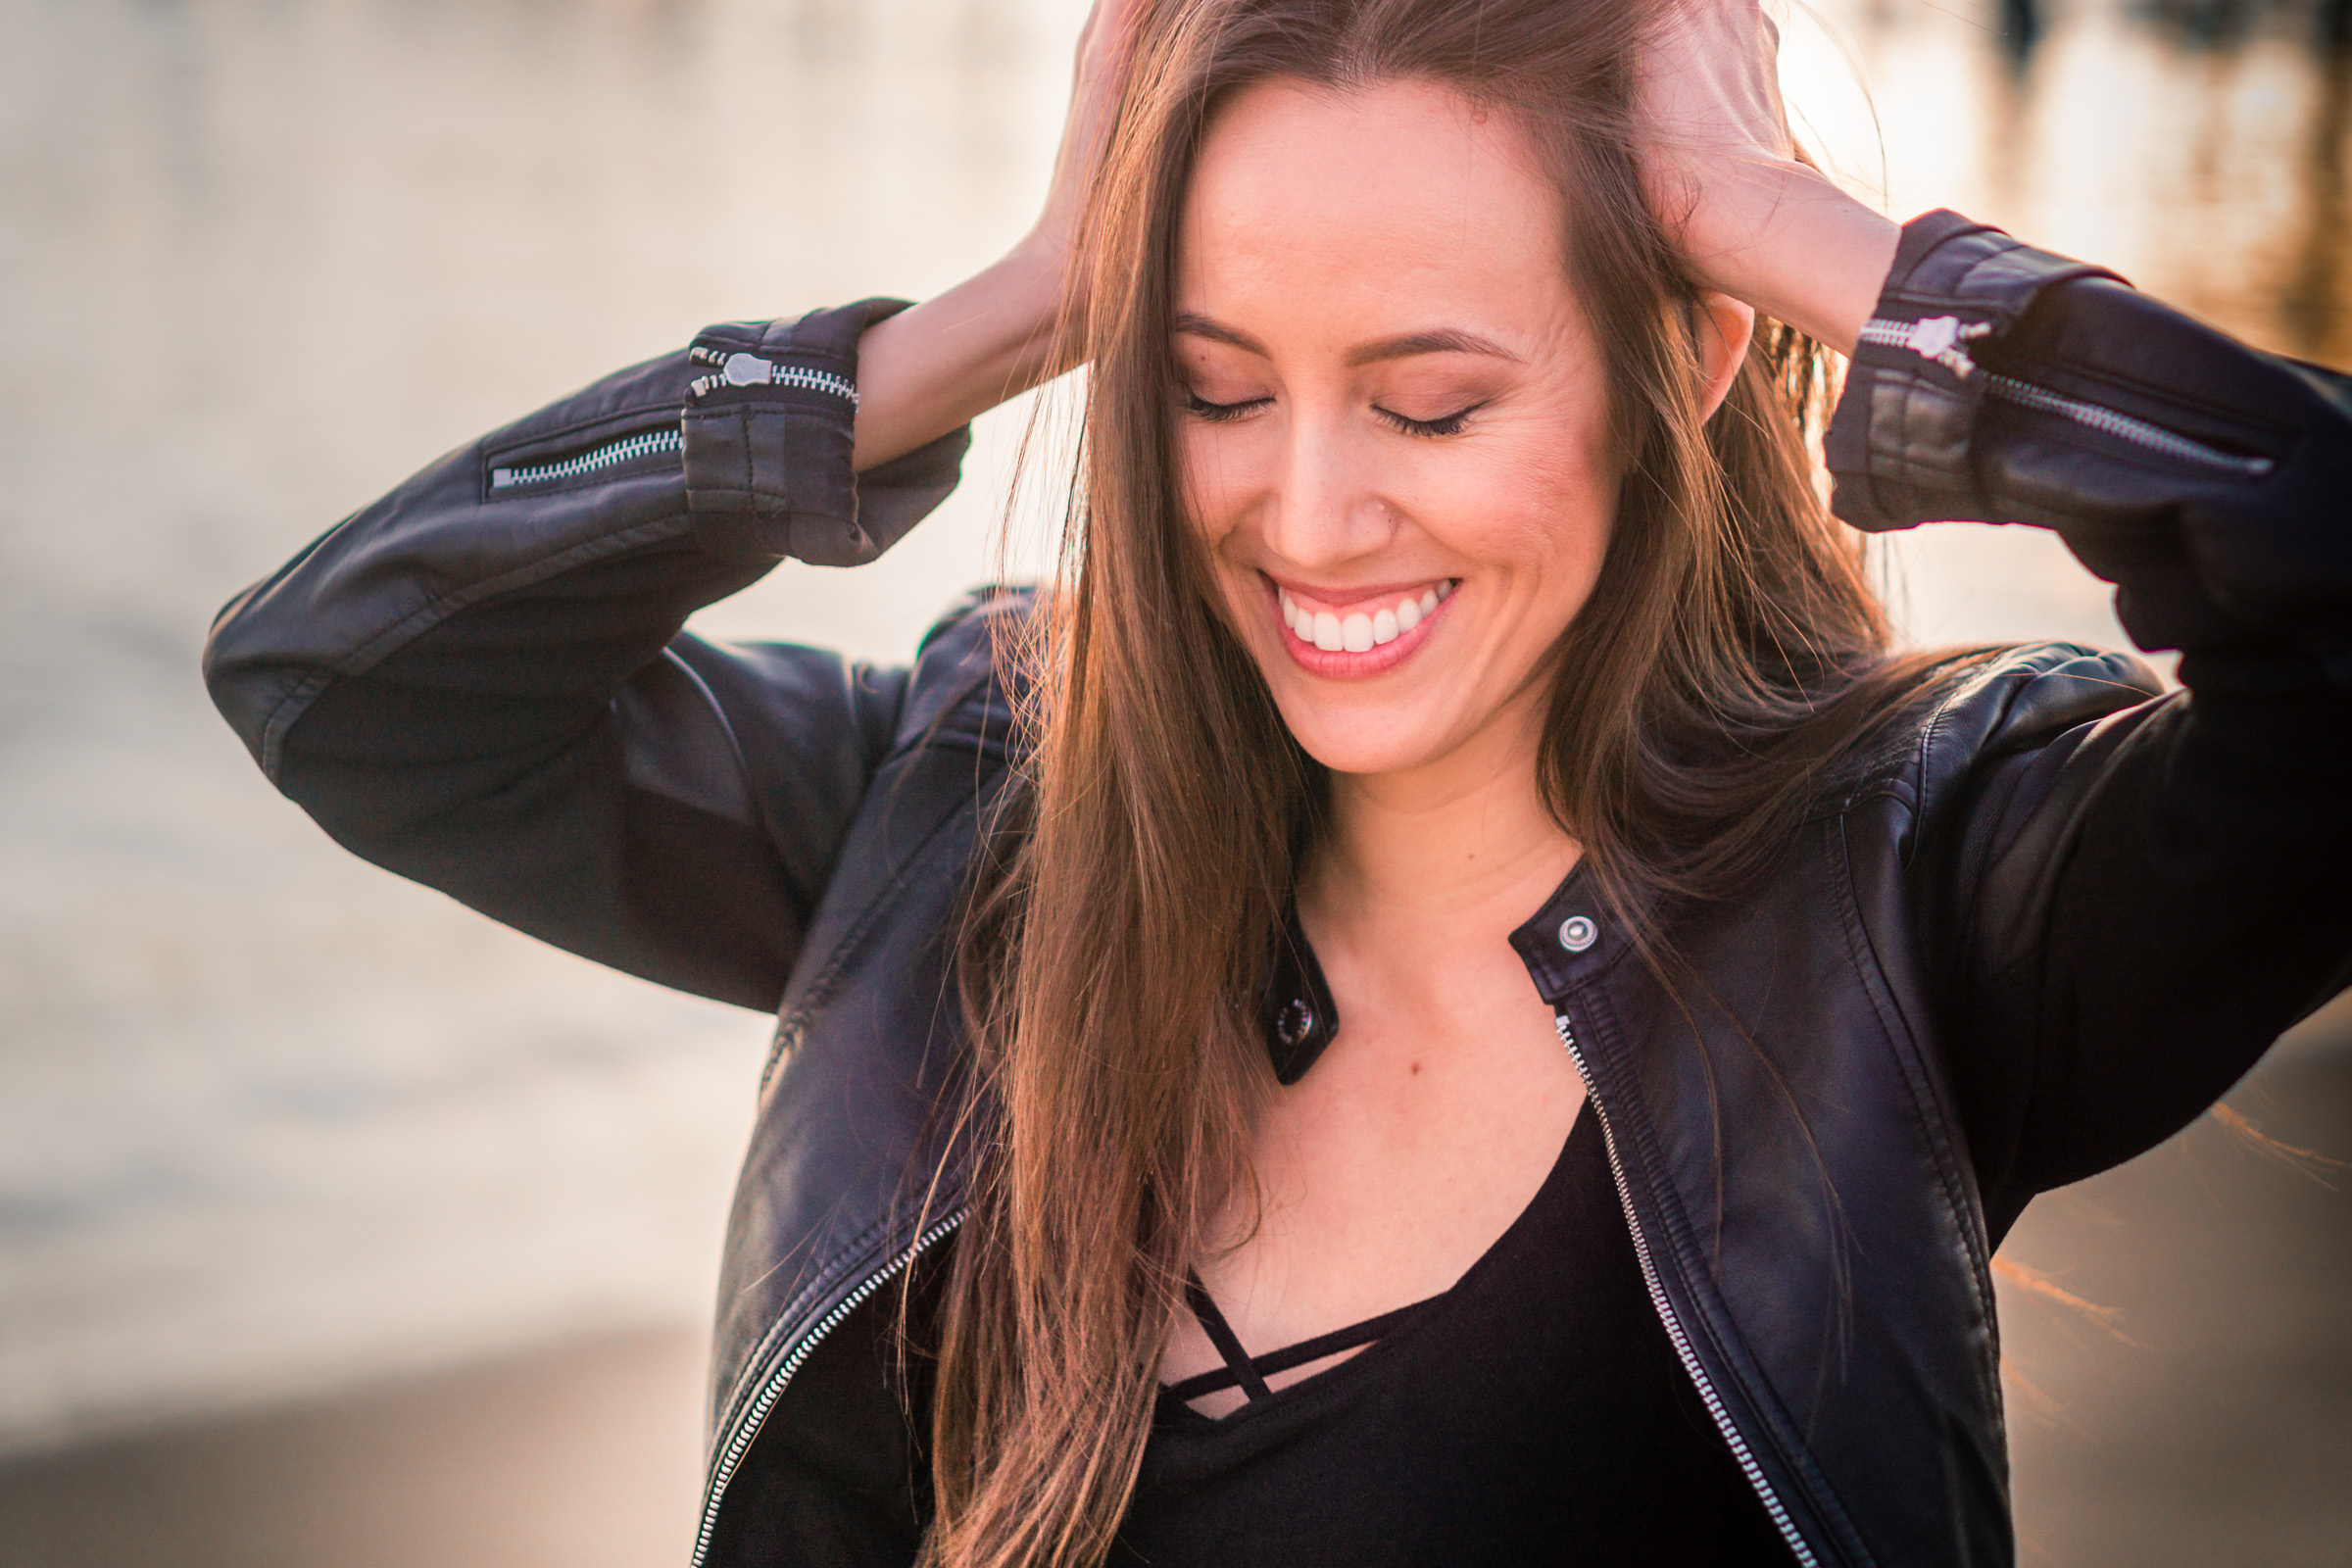 Natural light Fashion Portrait of smiling girl wearing black leather jacket and blue jeans taken during Golden hour At Balboa Pier in Orange County